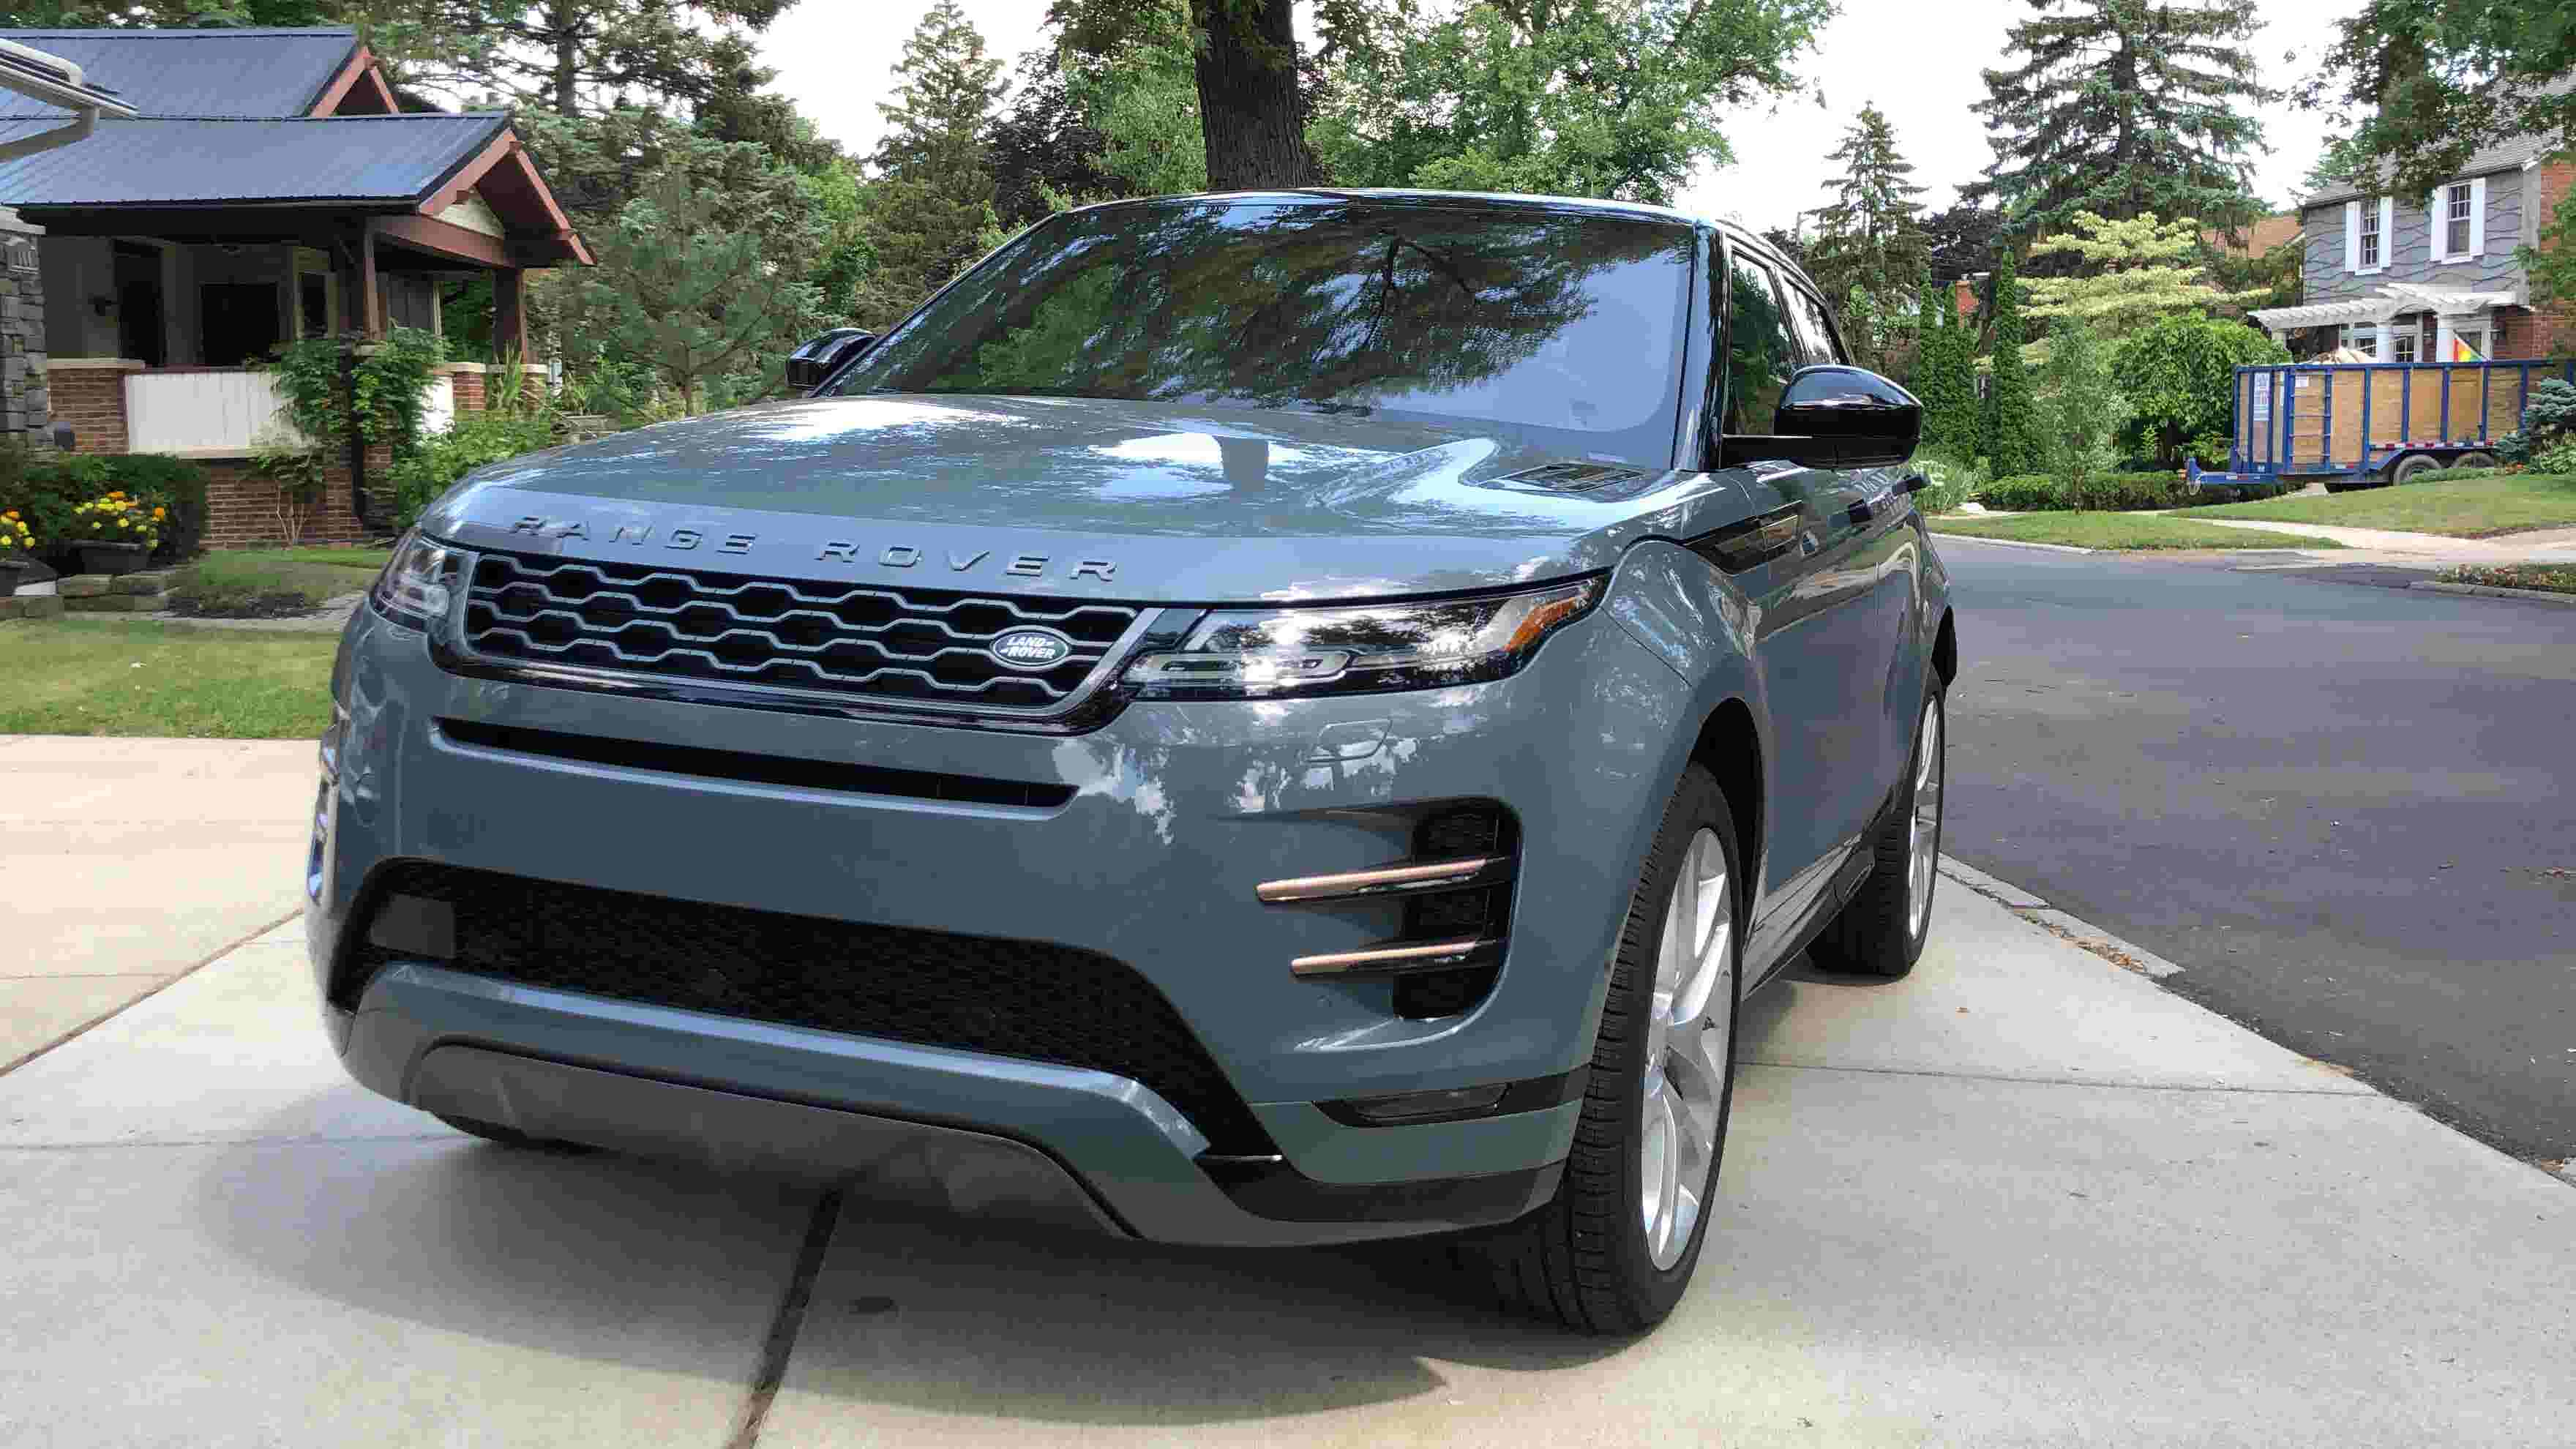 Best Off Road Suv 2020 Review: Pricey 2020 Range Rover Evoque has one 'maddening oversight'